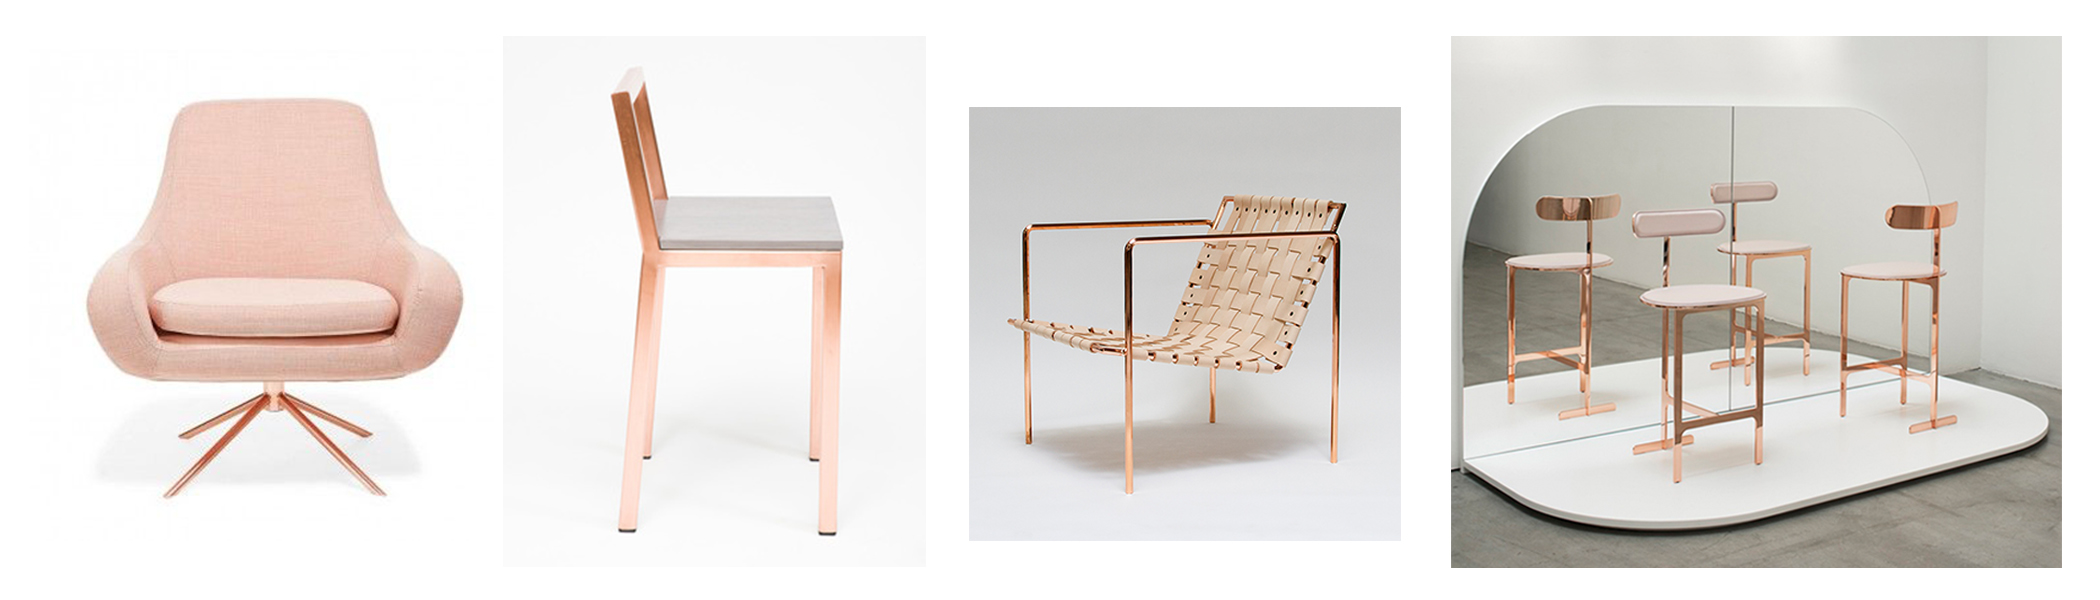 From left to right: Softline Apricot swivel curved chair $1700; Assembly design Copper slight chair; Eric Trine Rod&Weave chair; Yabu Pushelberg Avenue Road chair collection